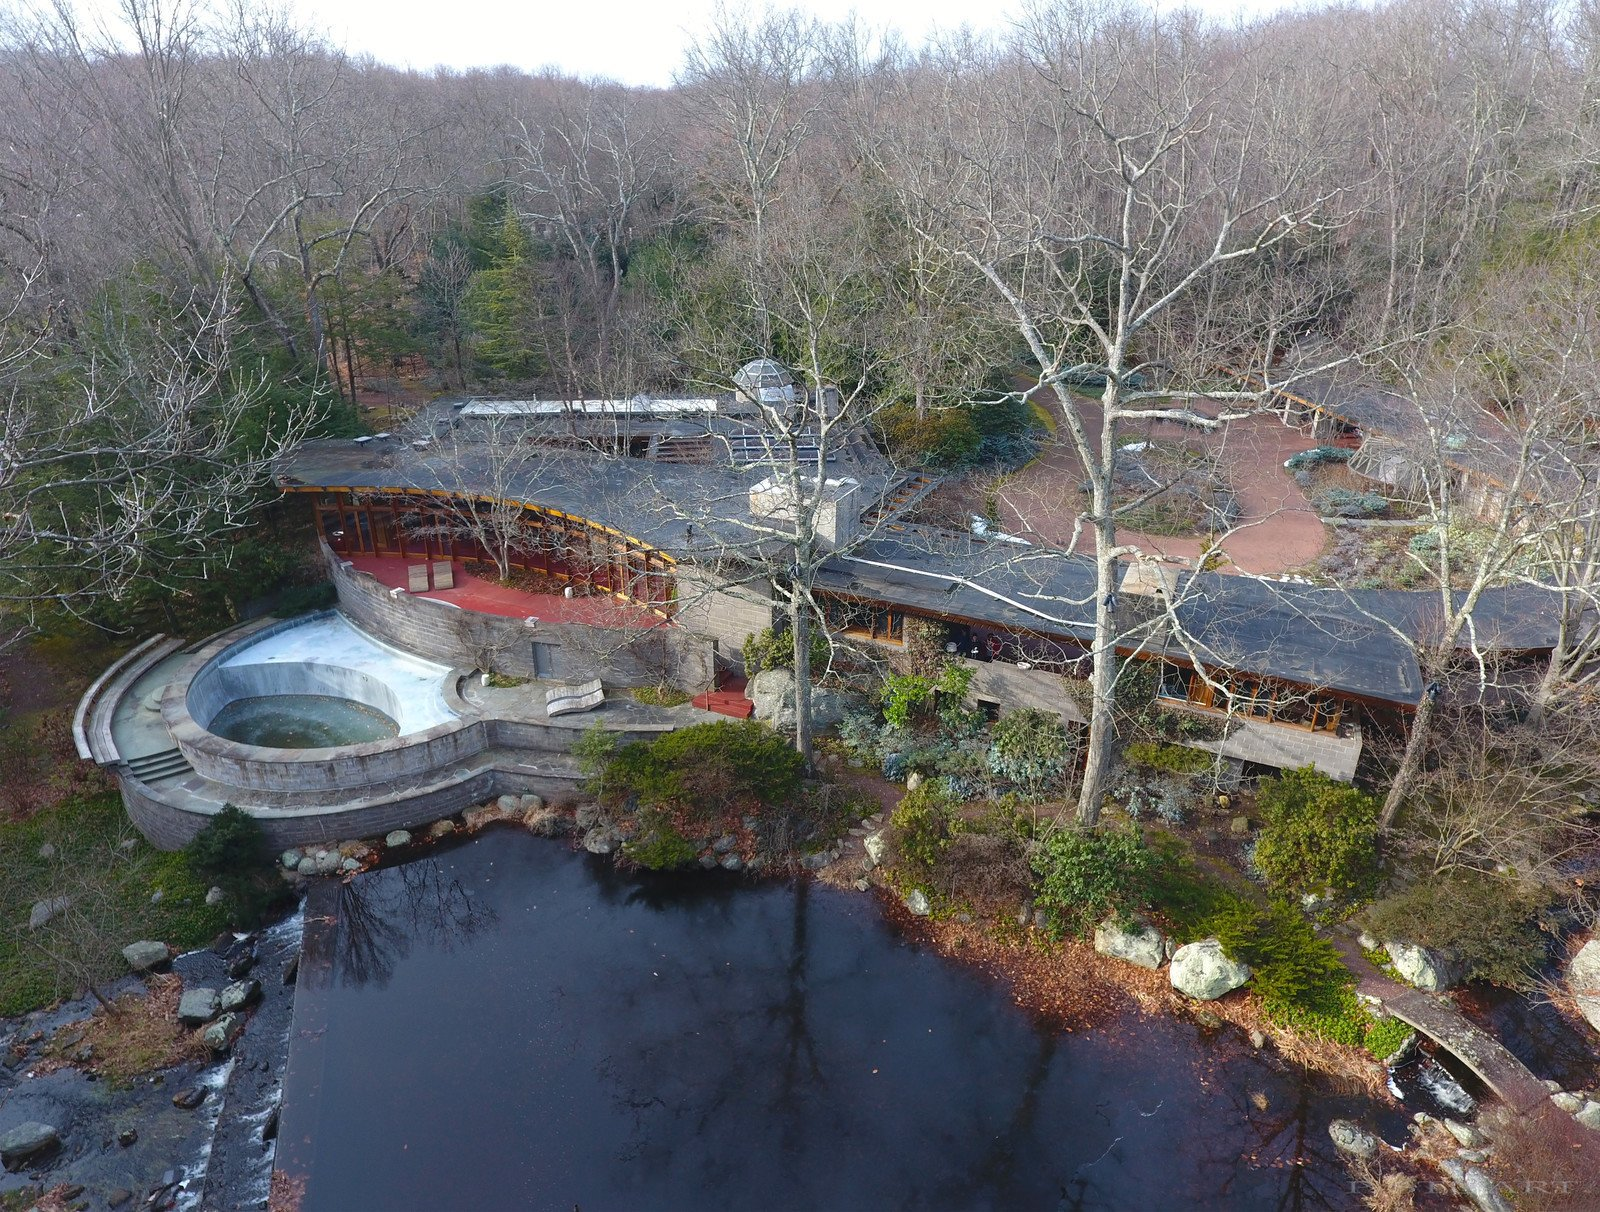 An overhead drone view shows the 15-acre property that also hosts a heated pool, river, tennis court, barn/stable, sculpture path, and rooftop observatory. The original landscaping was designed by Frank Okamura and Charles Middeleer.